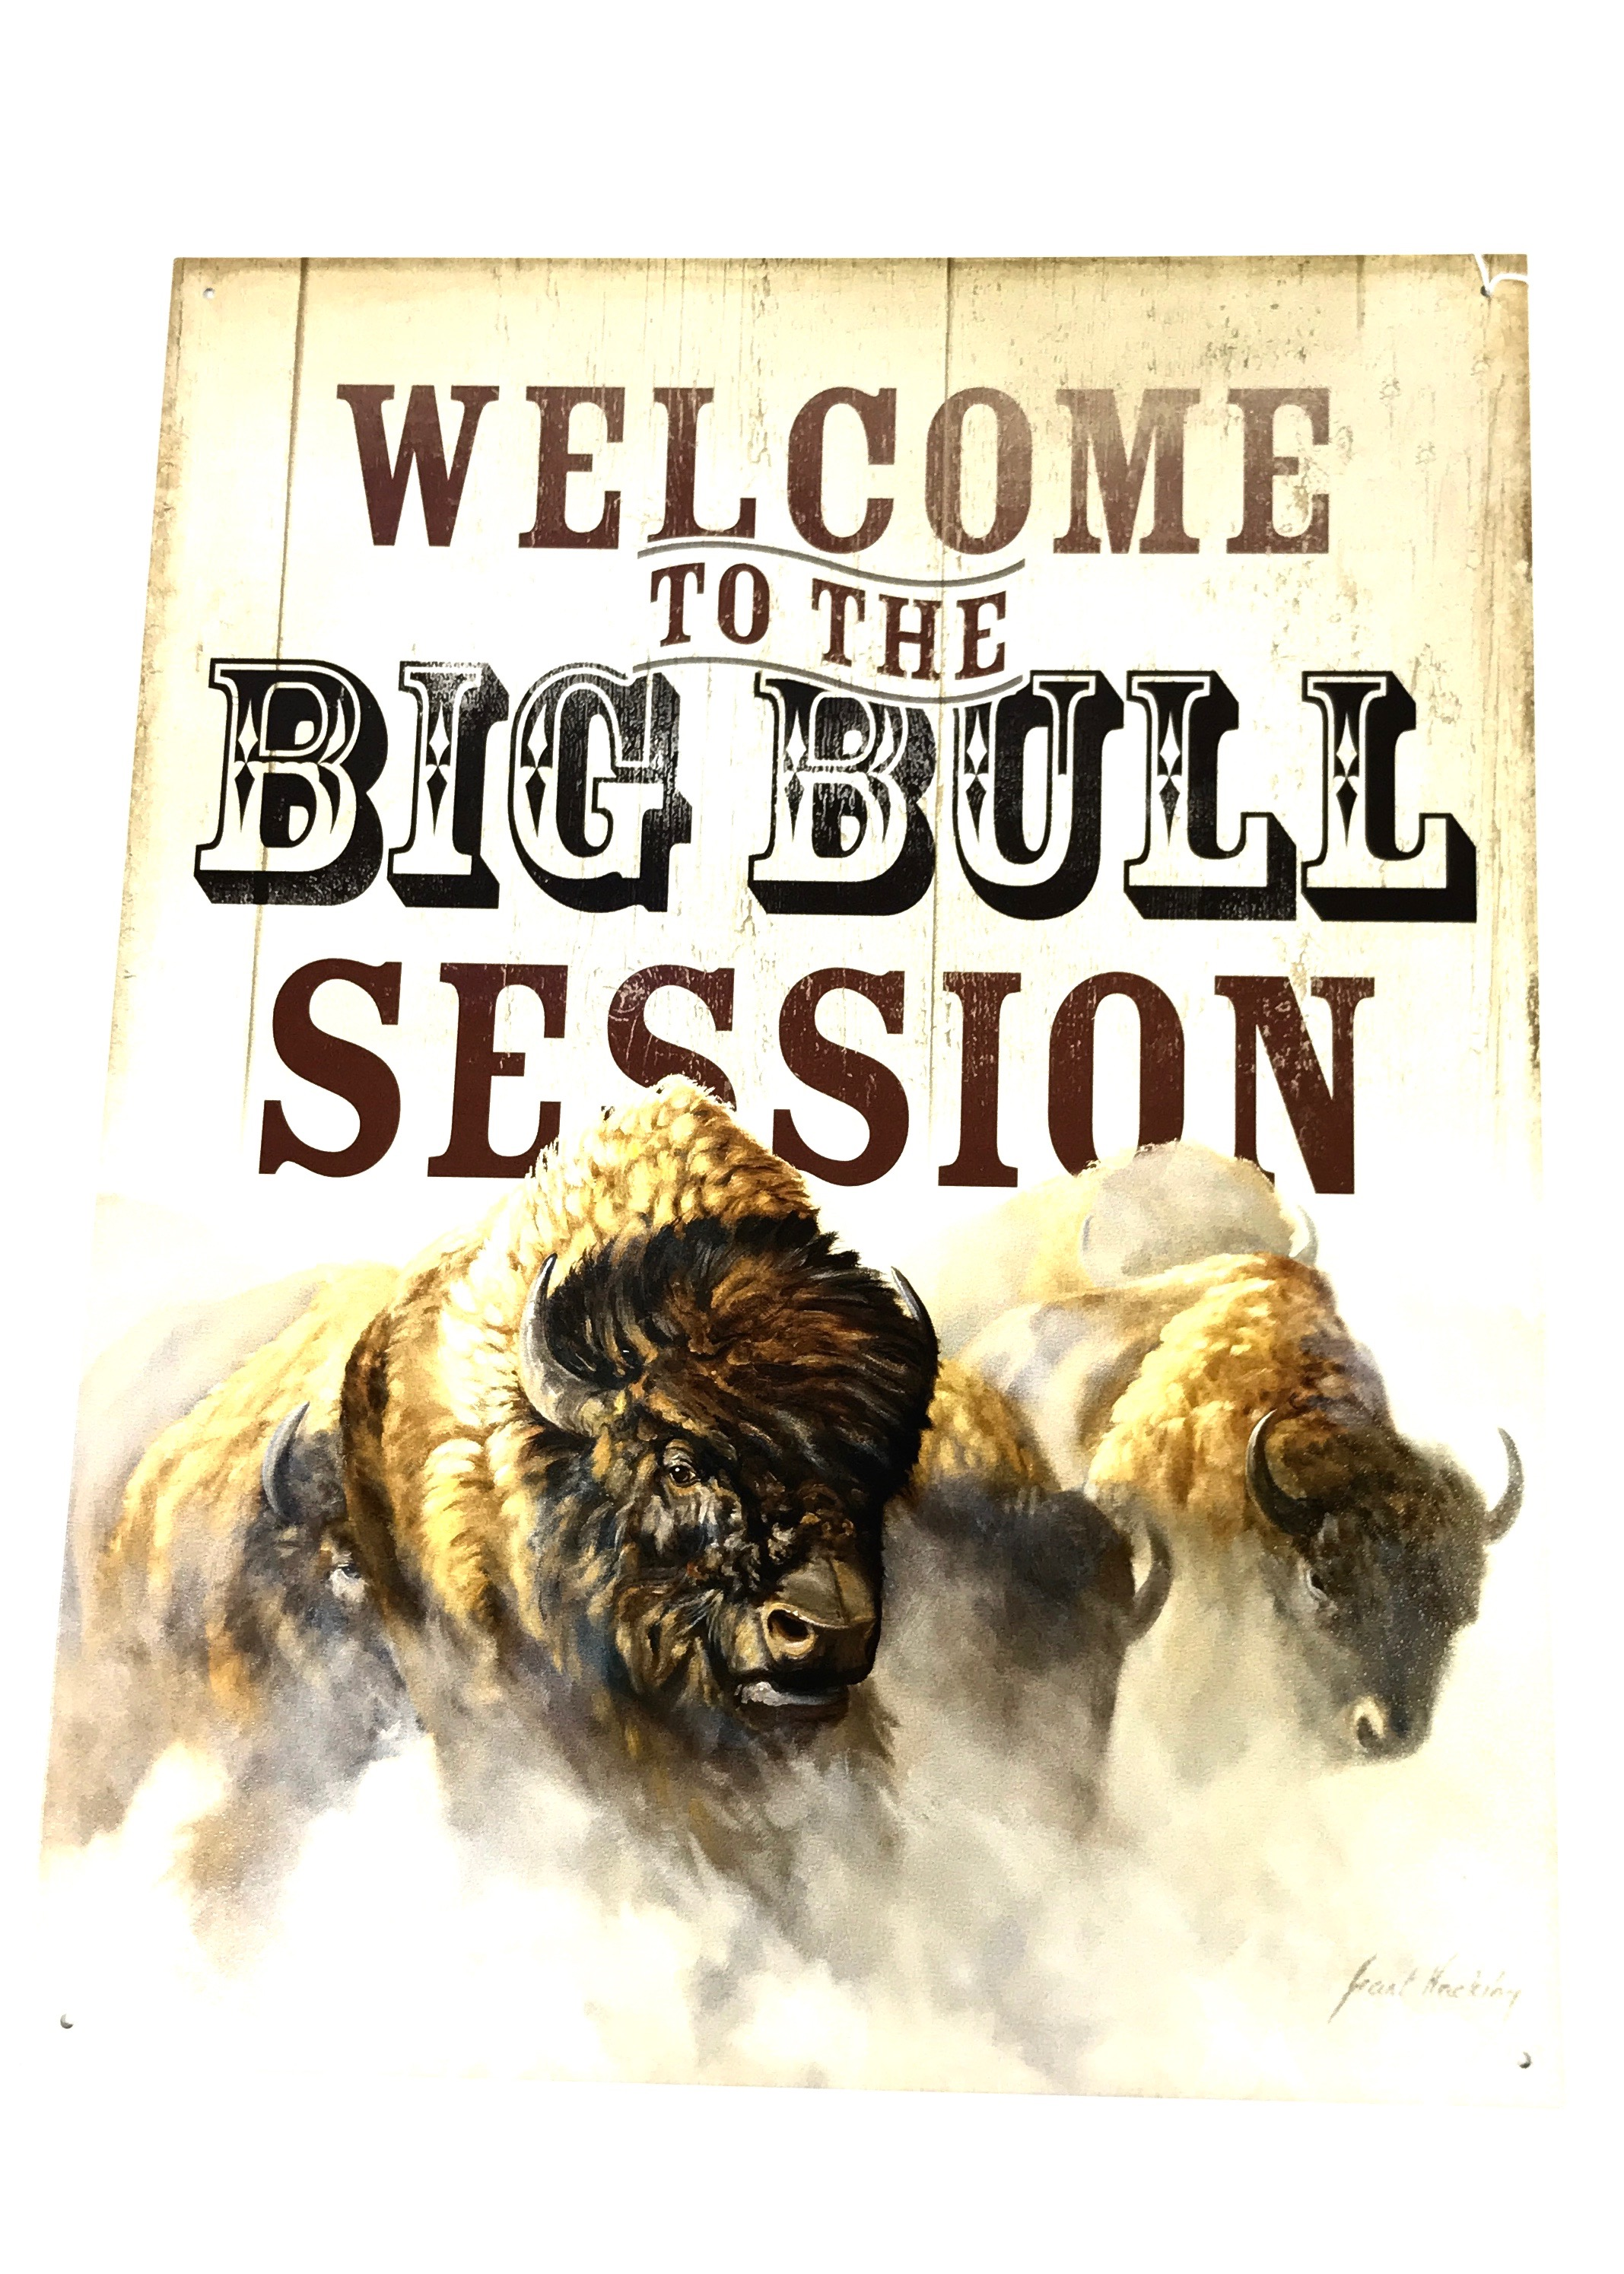 (8280) Welcome Bull Session Bison 12x16 Tin Sign